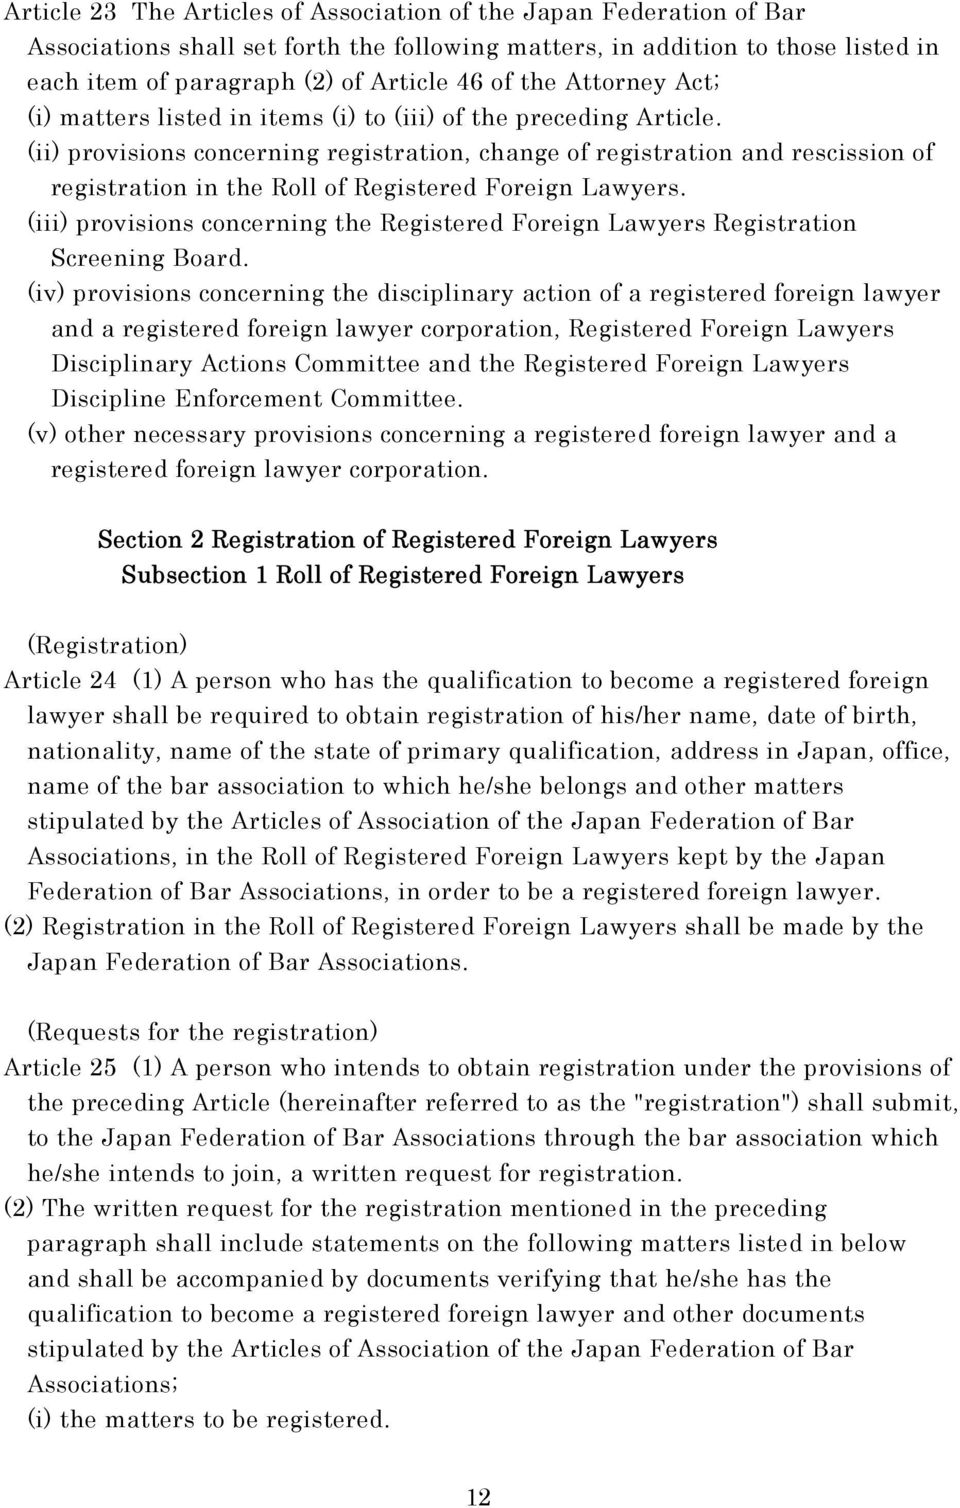 (ii) provisions concerning registration, change of registration and rescission of registration in the Roll of Registered Foreign Lawyers.